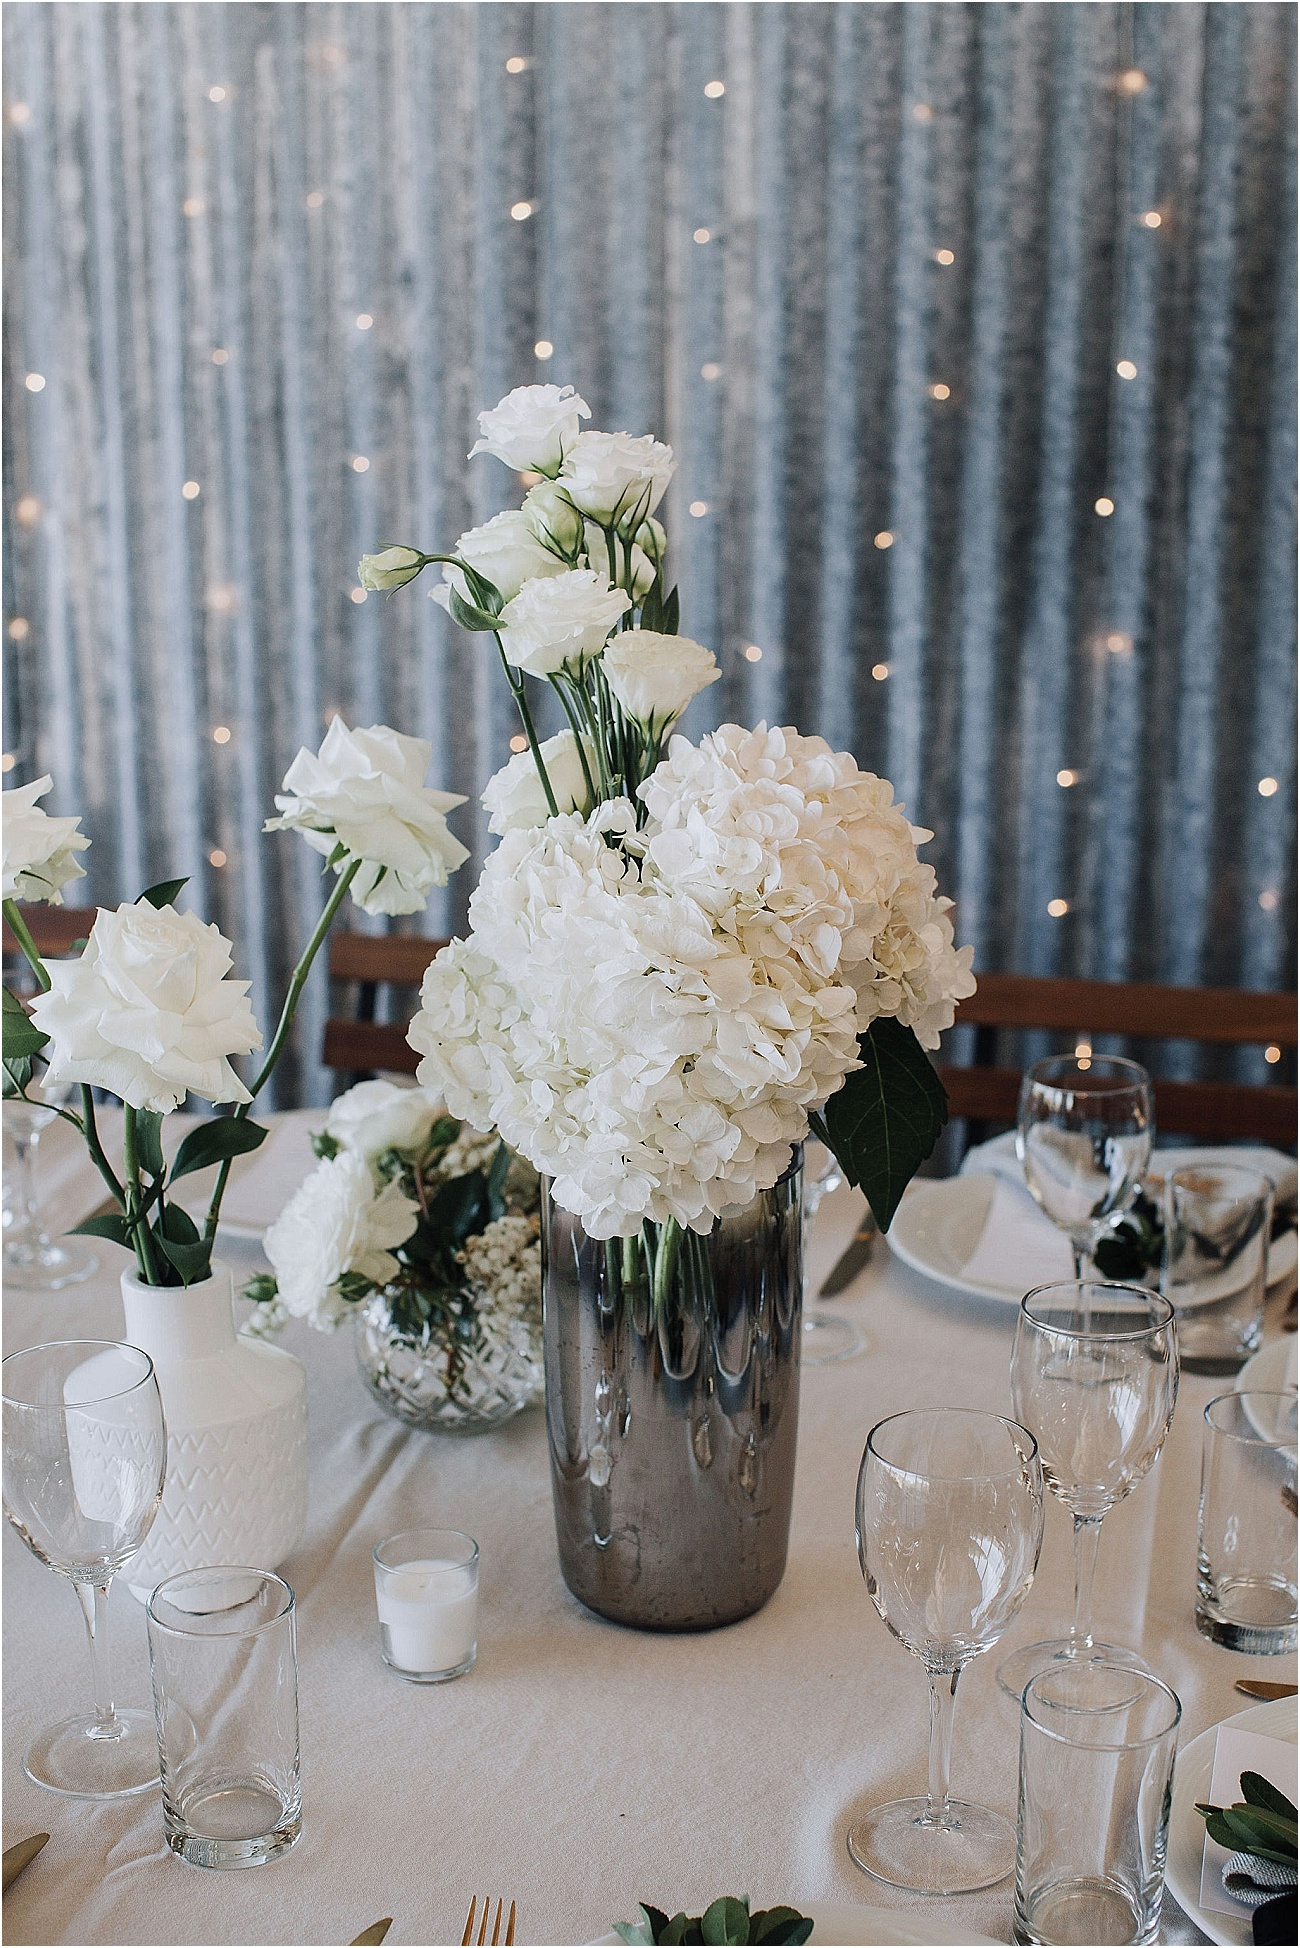 Sophisticated white wedding flowers